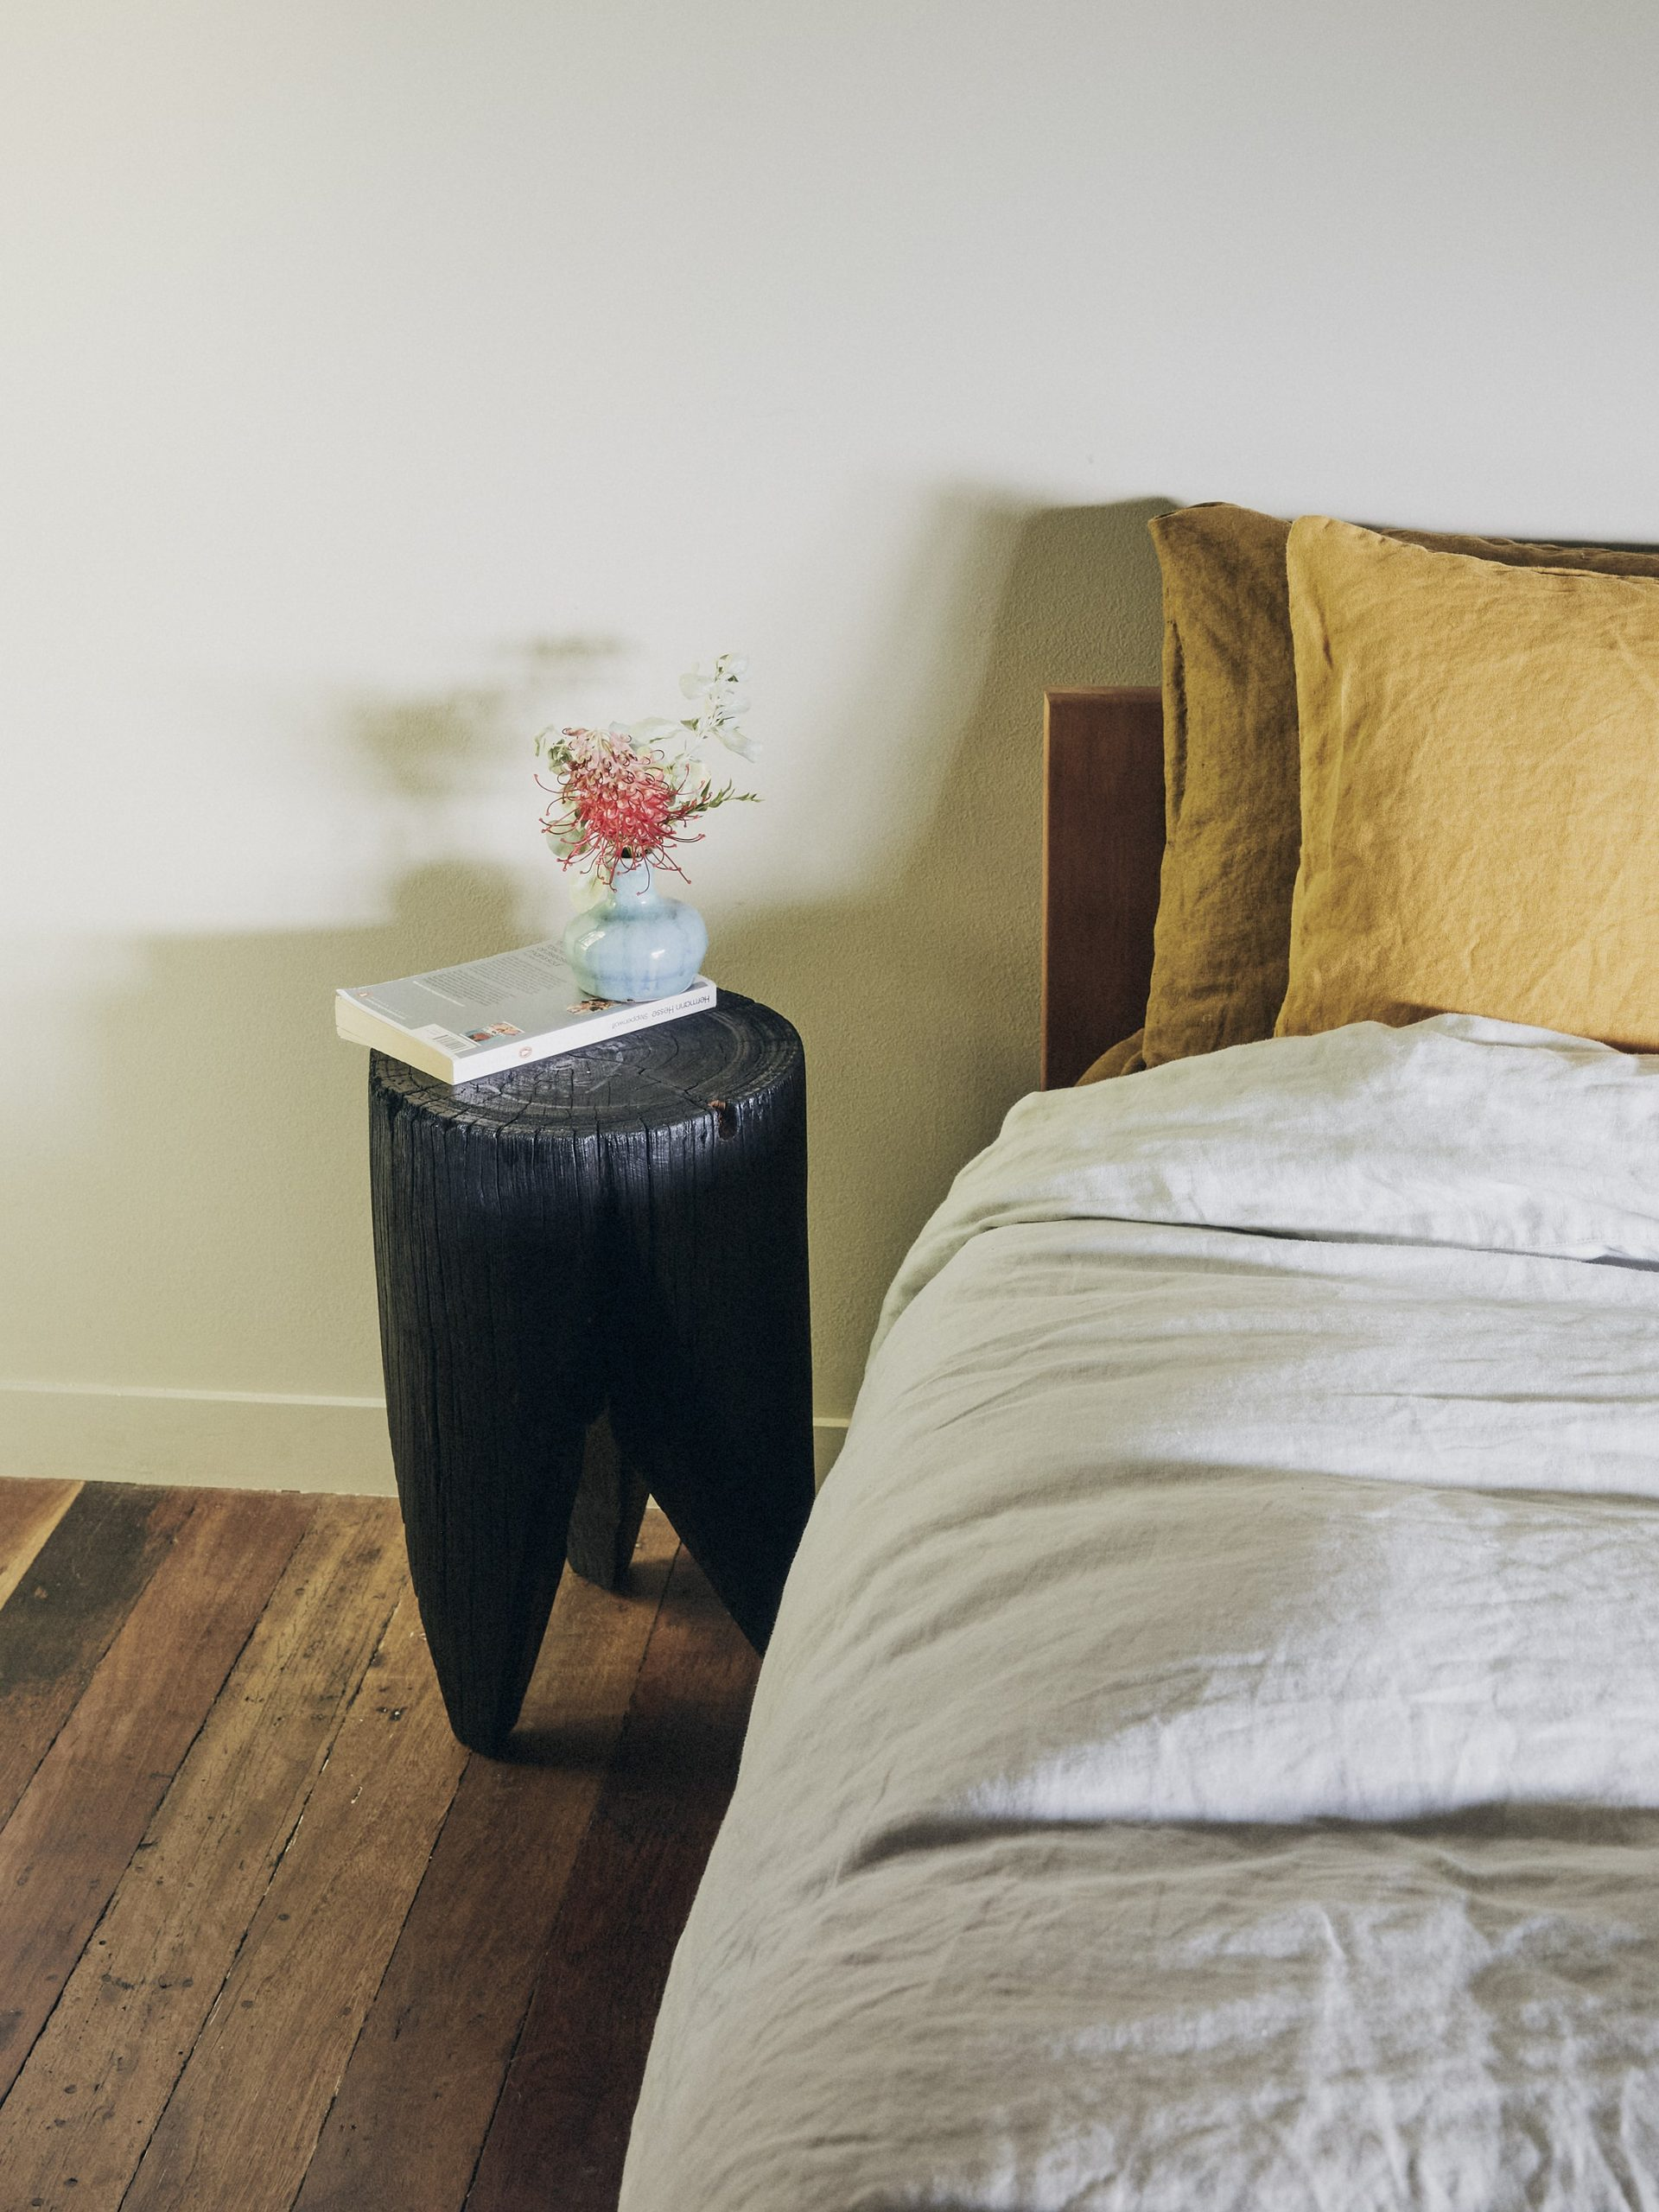 Black timber bedside table next to bed